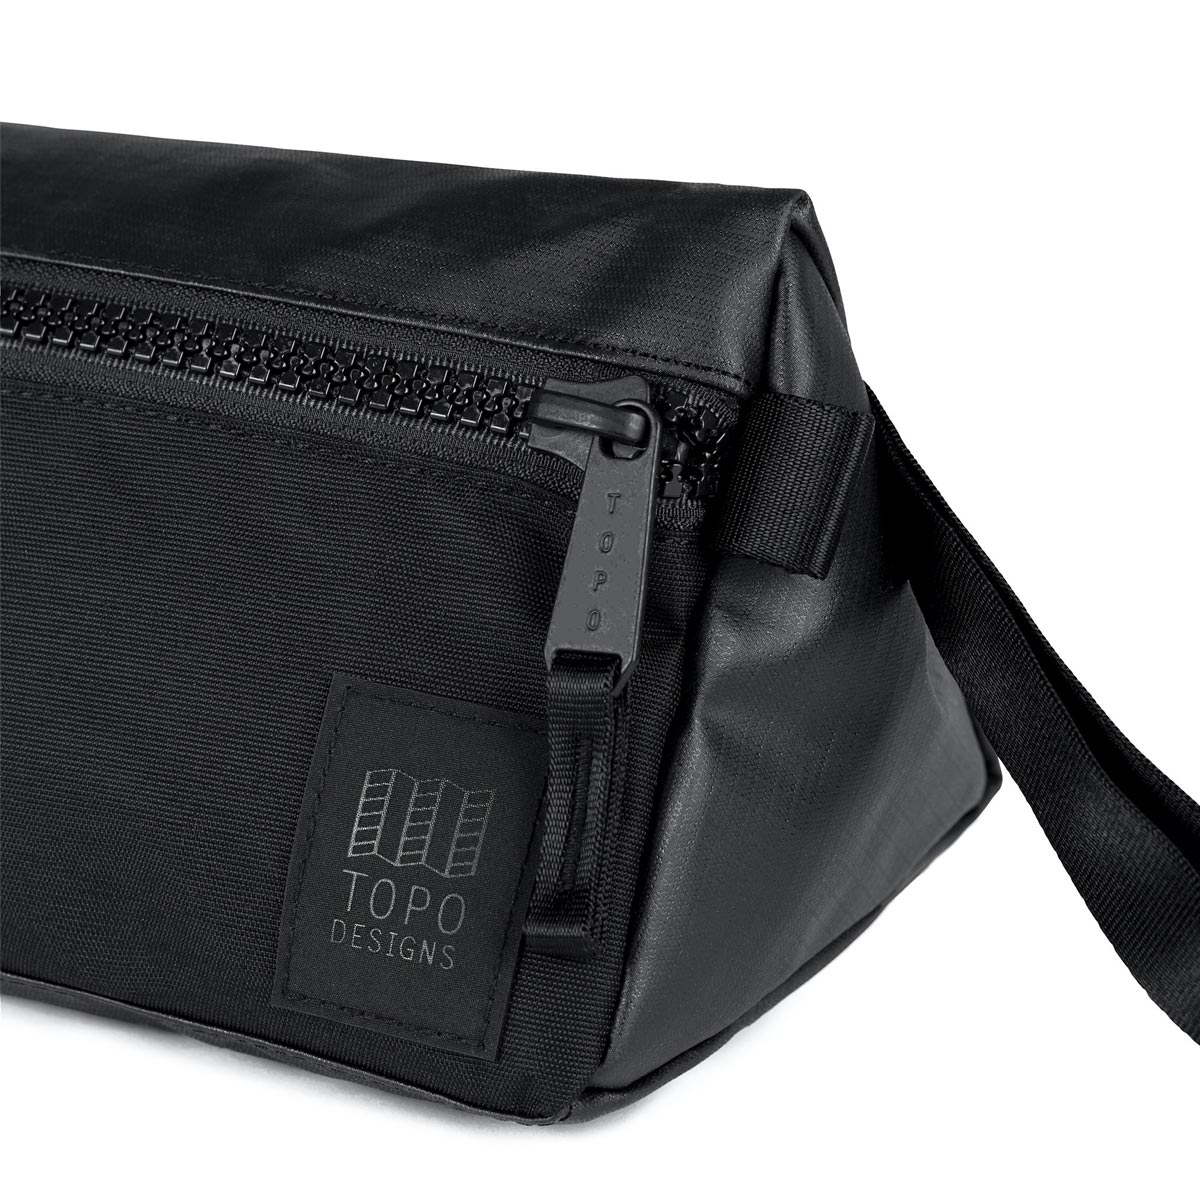 Topo Designs Dopp Kit Premium Black, water-resistant, travel light, accessory bag